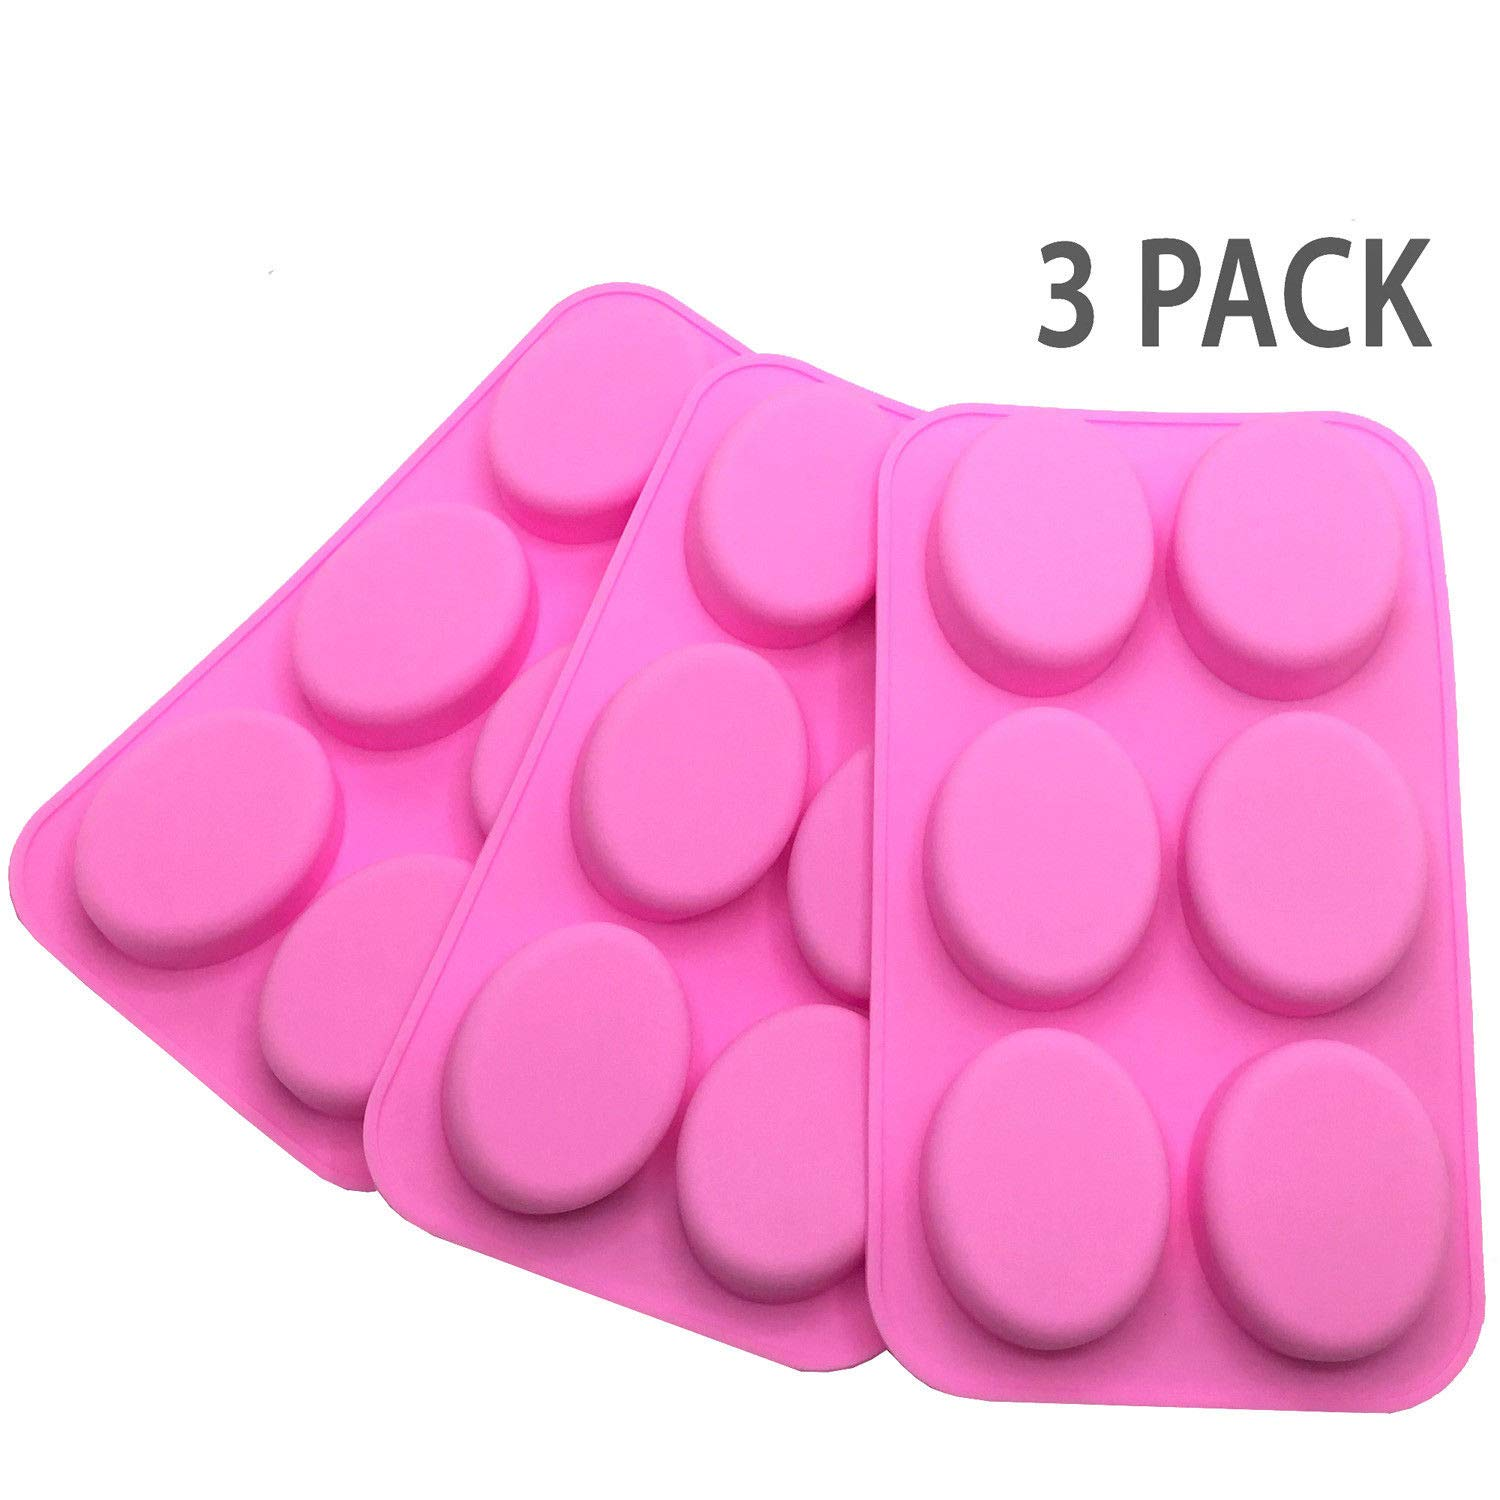 [Set of 3] 6 Cavity DIY Handmade Oval Silicone Mold for Soap Bar ~ US Seller